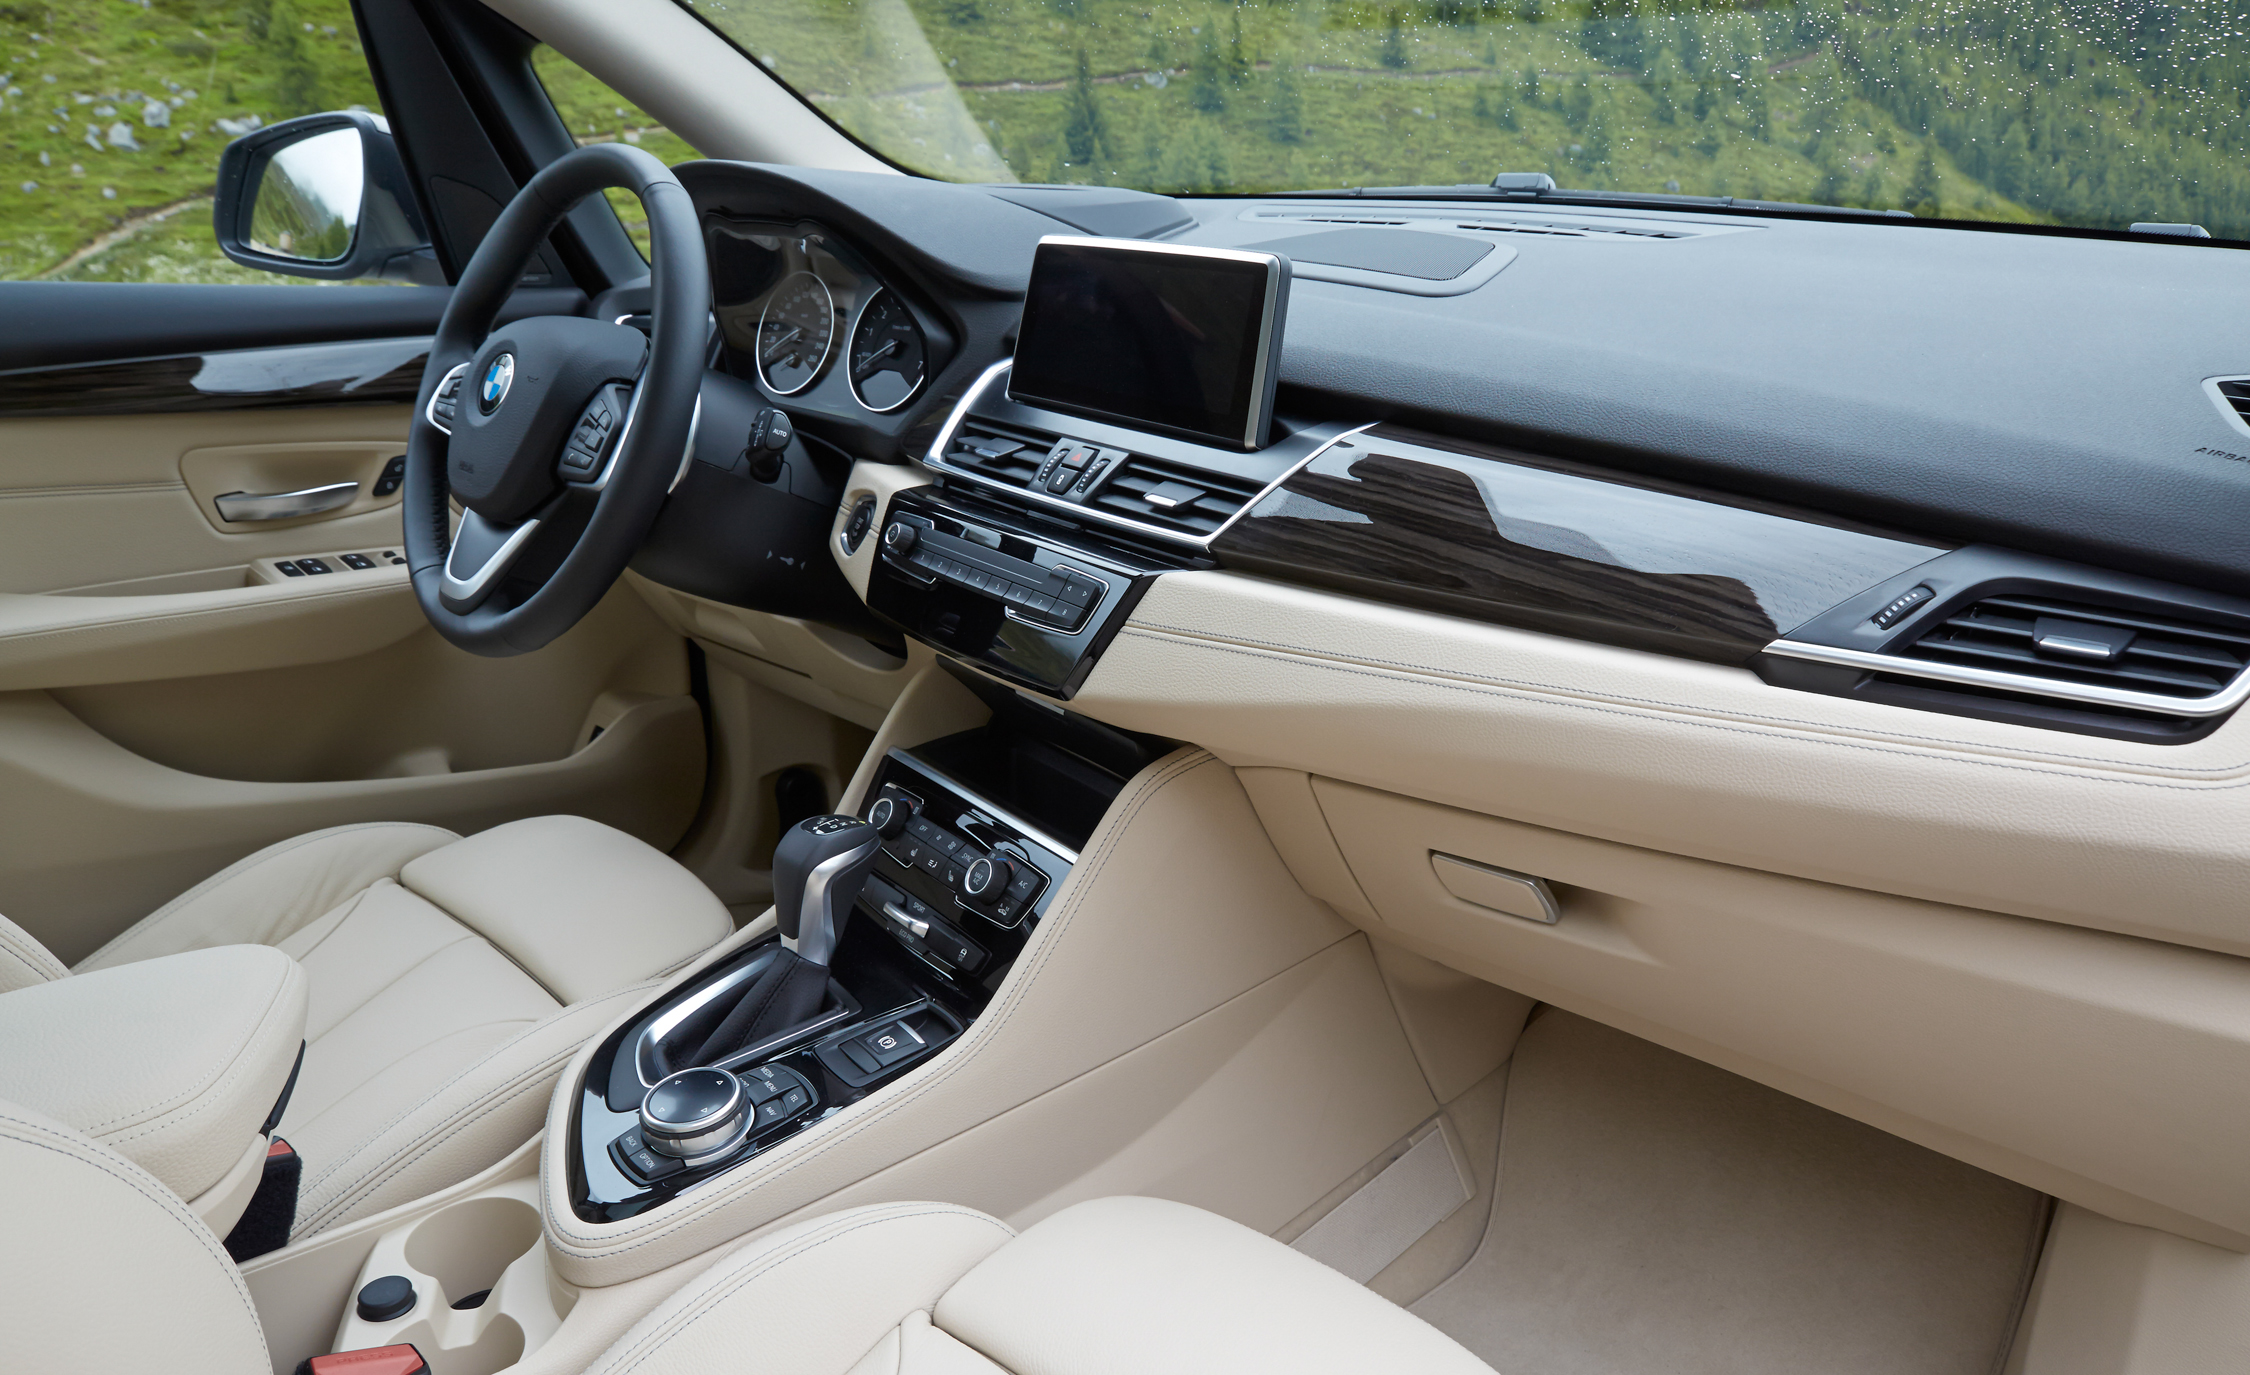 2015 BMW 225i Active Tourer (Euro Spec) Interior (Photo 9 of 14)